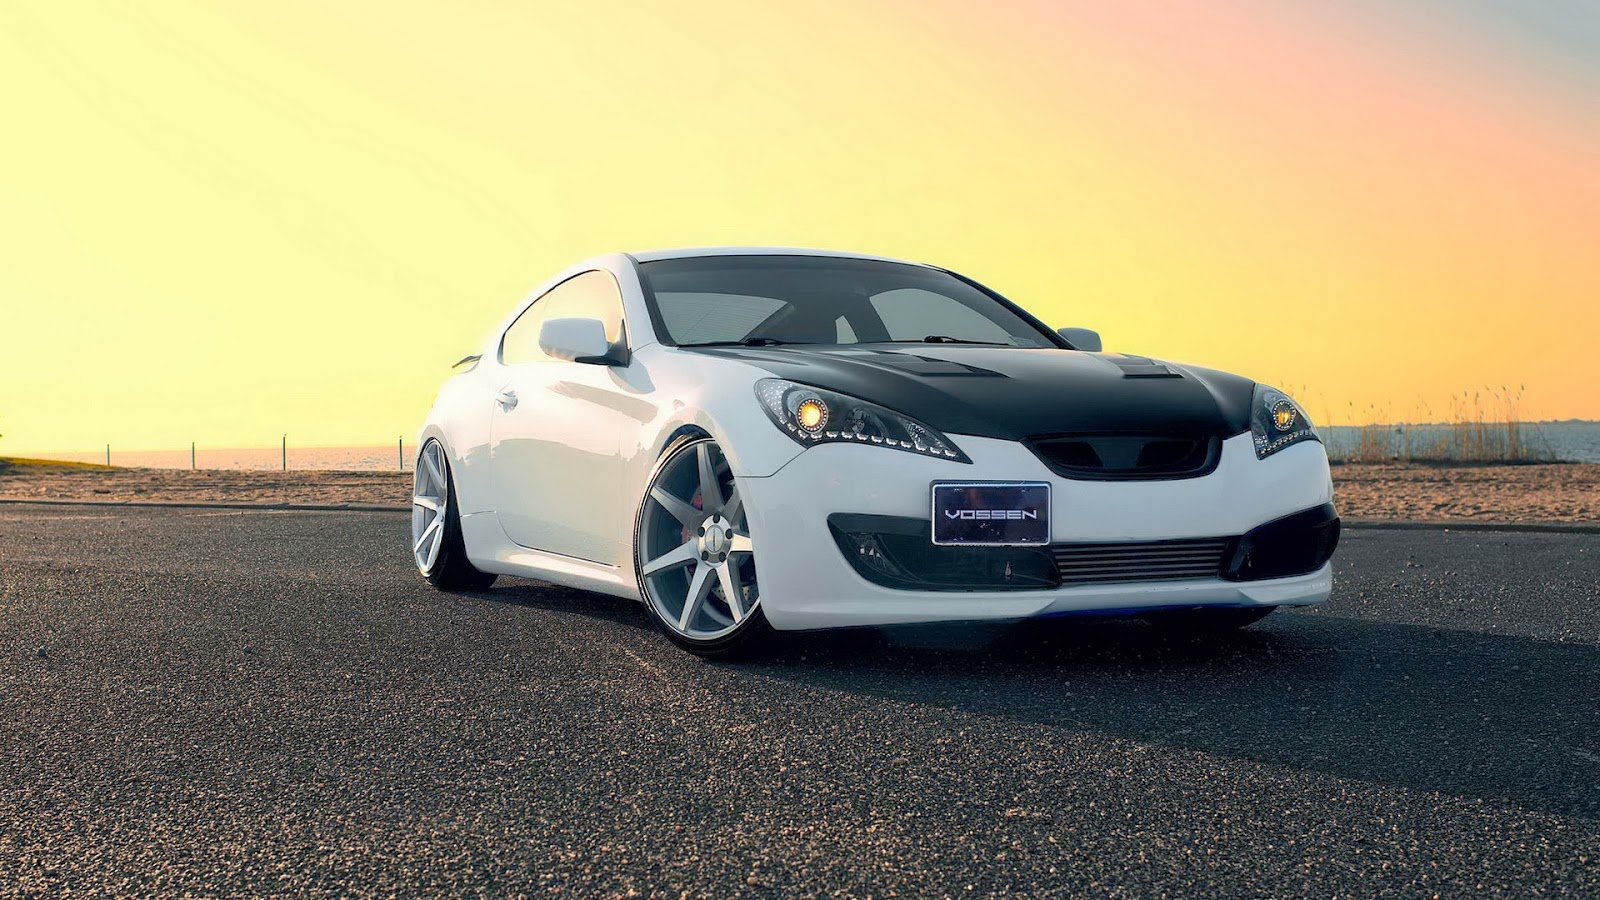 HIGH DEFINITION CAR WALLPAPERS